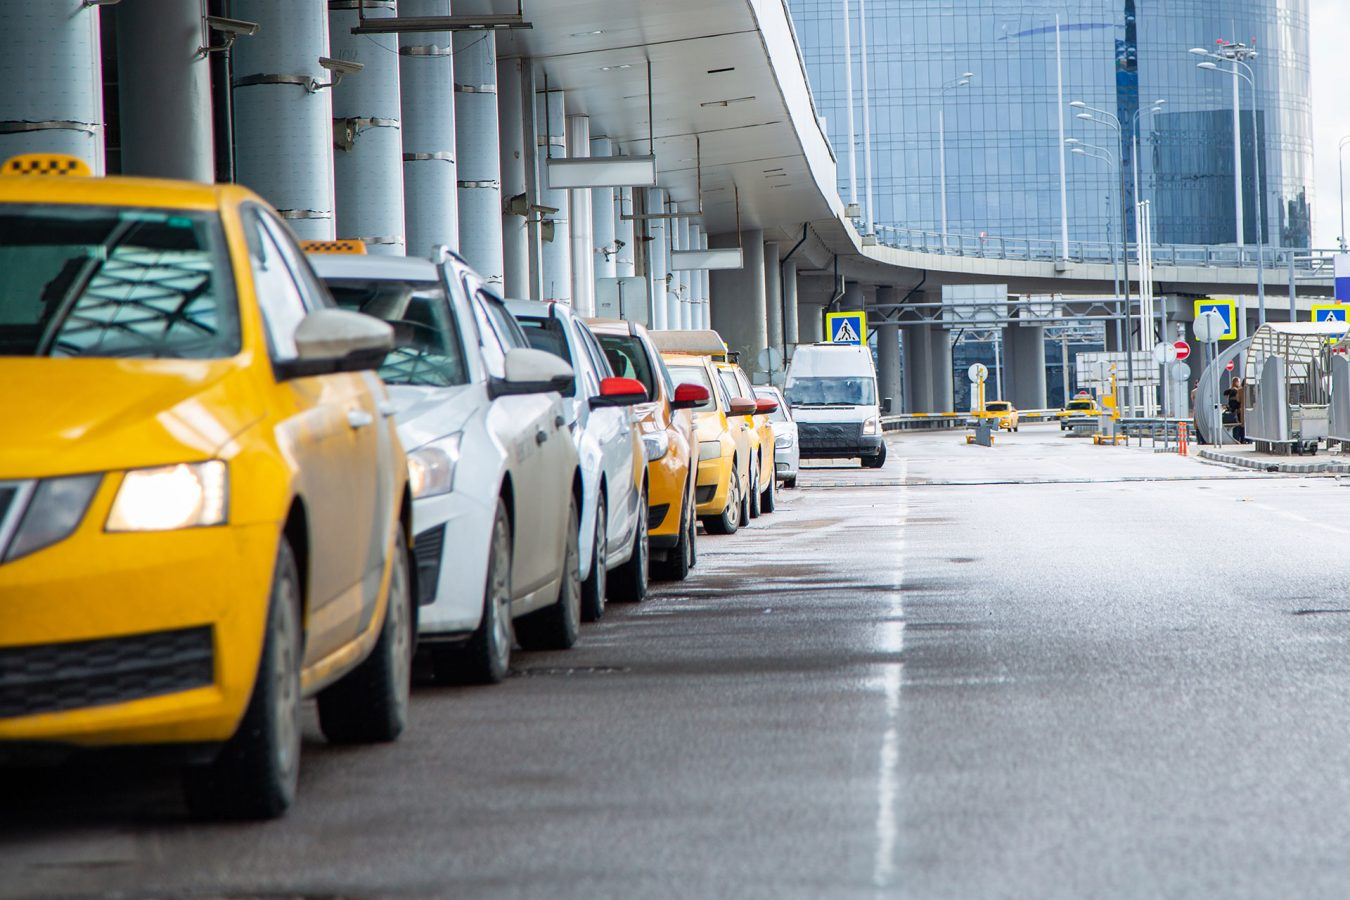 All In One Service With Woking Taxi